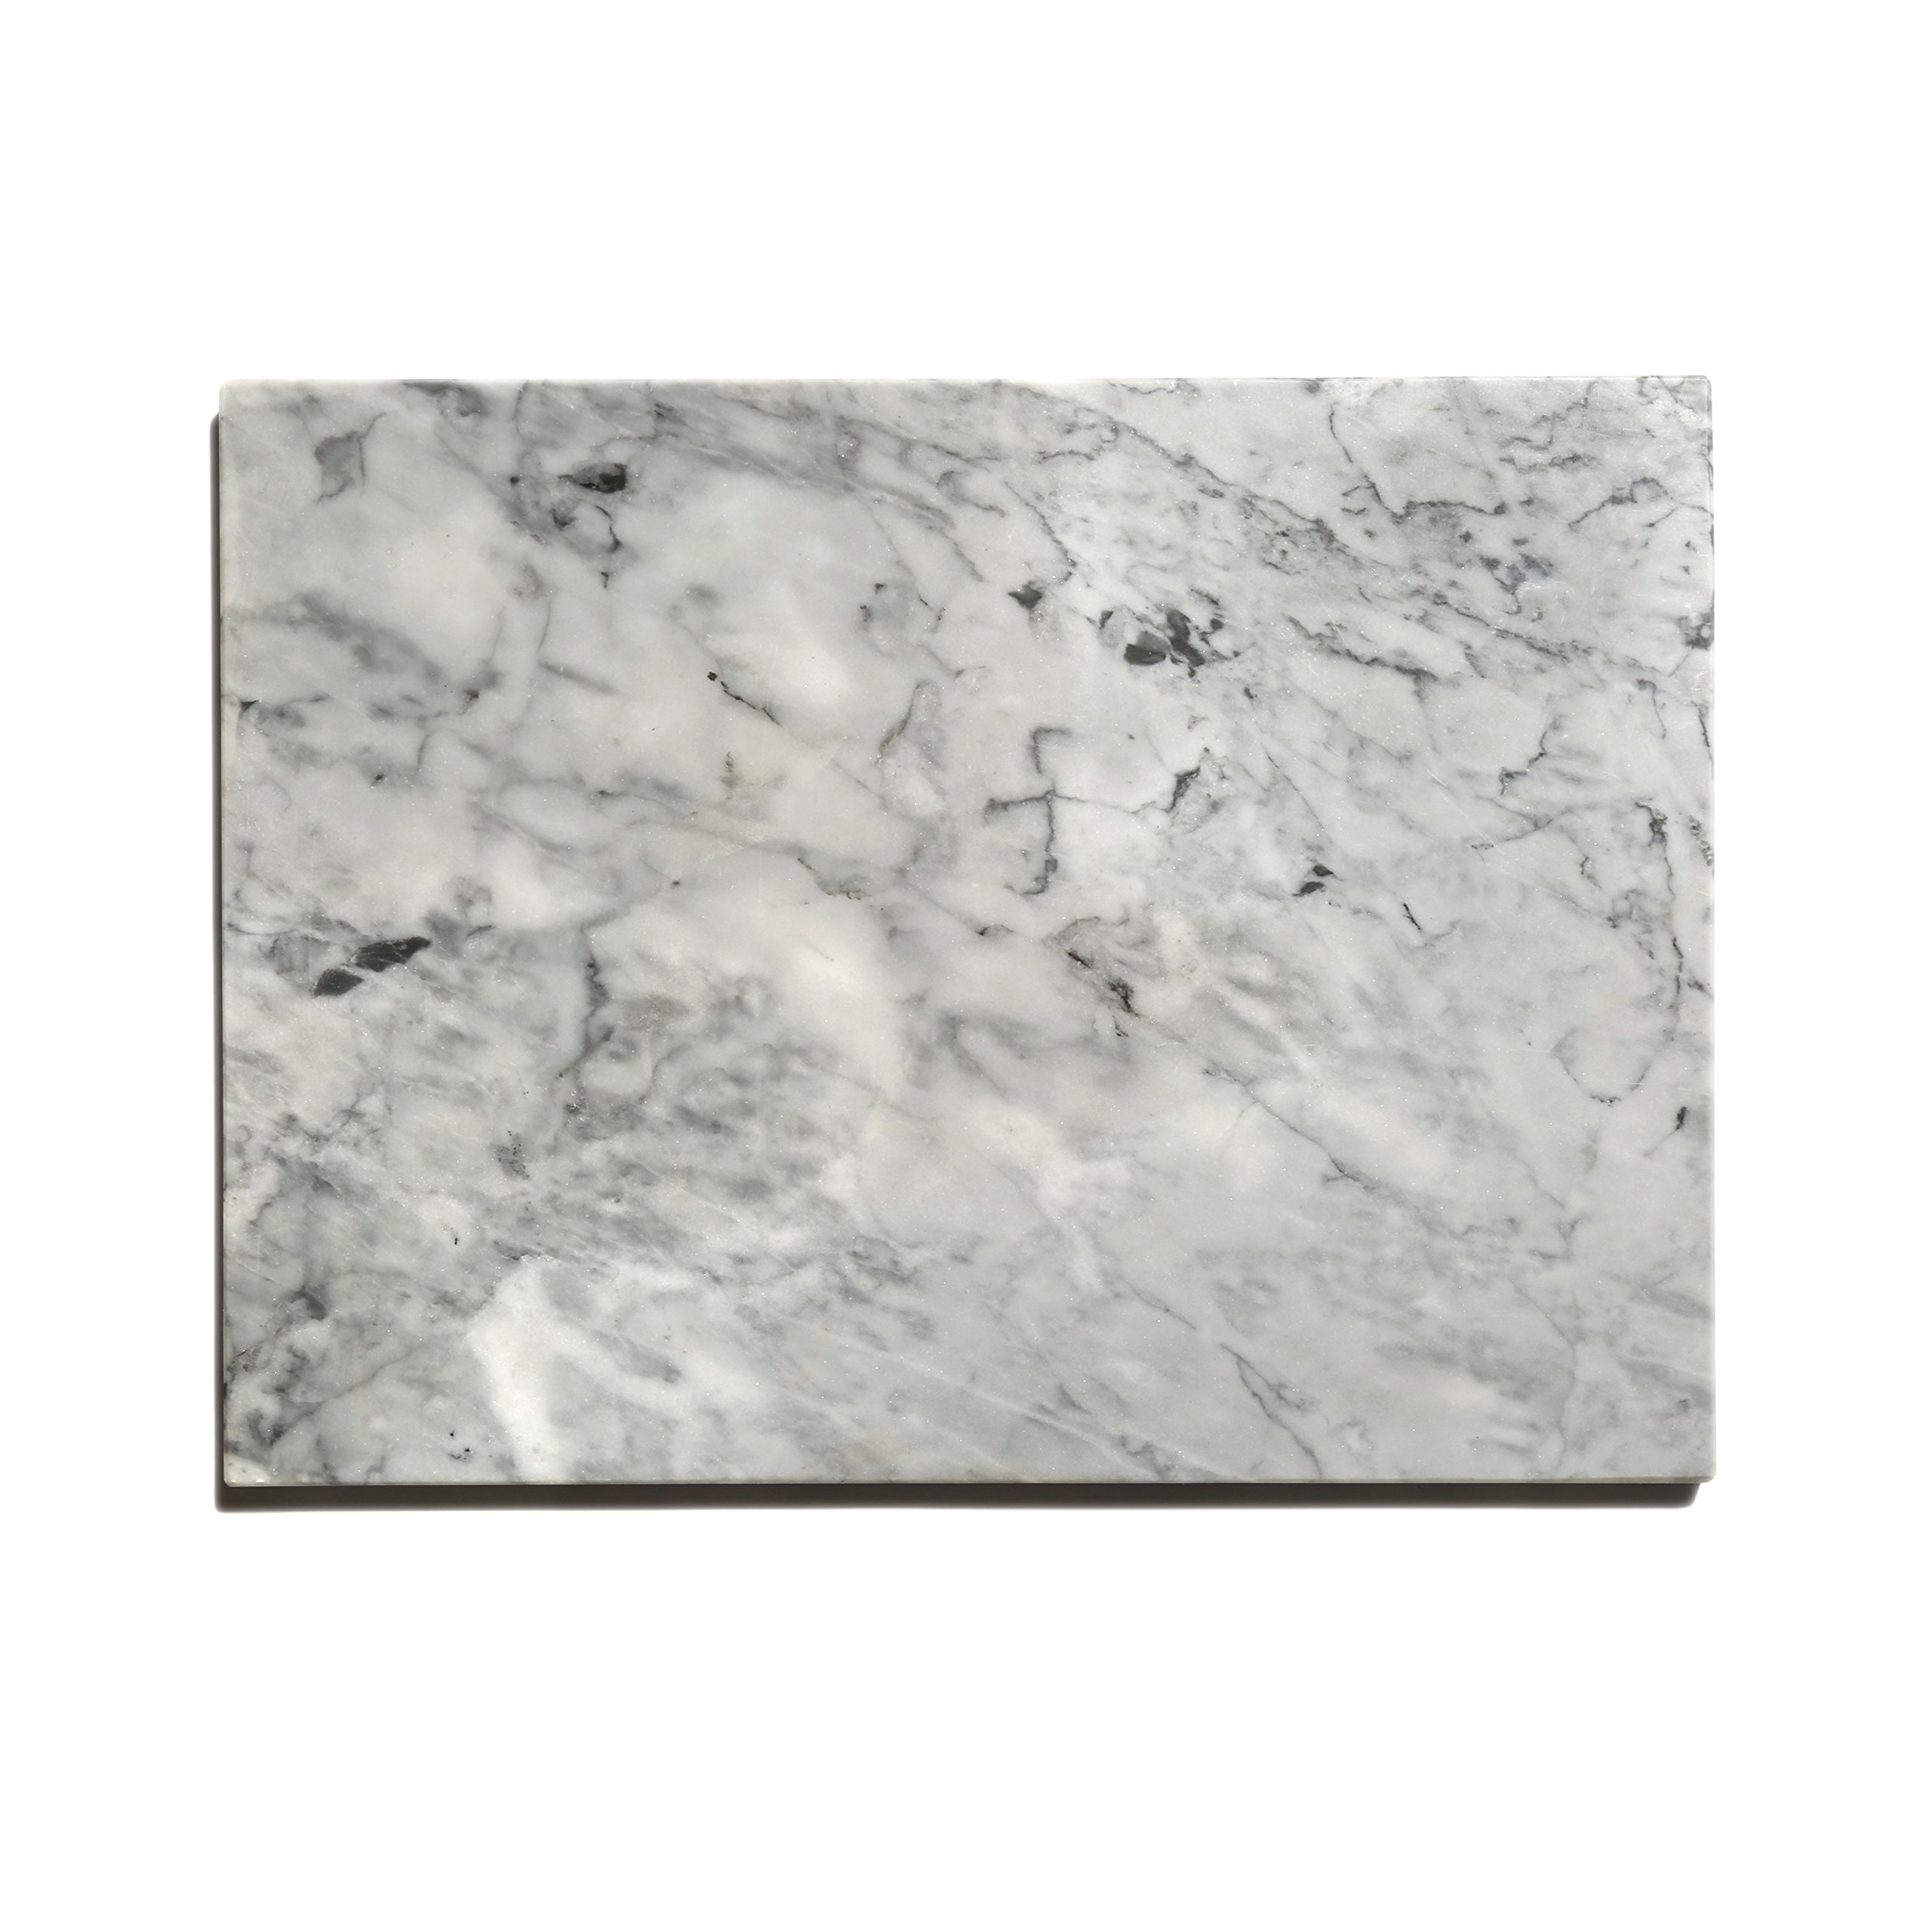 Kota Japan Premium Non-Stick Natural Marble Pastry Board Slab 12'' X 16'' with No-Slip Rubber Feet for Stability and to Protect your Countertop | Easy to Clean | Stays Cool